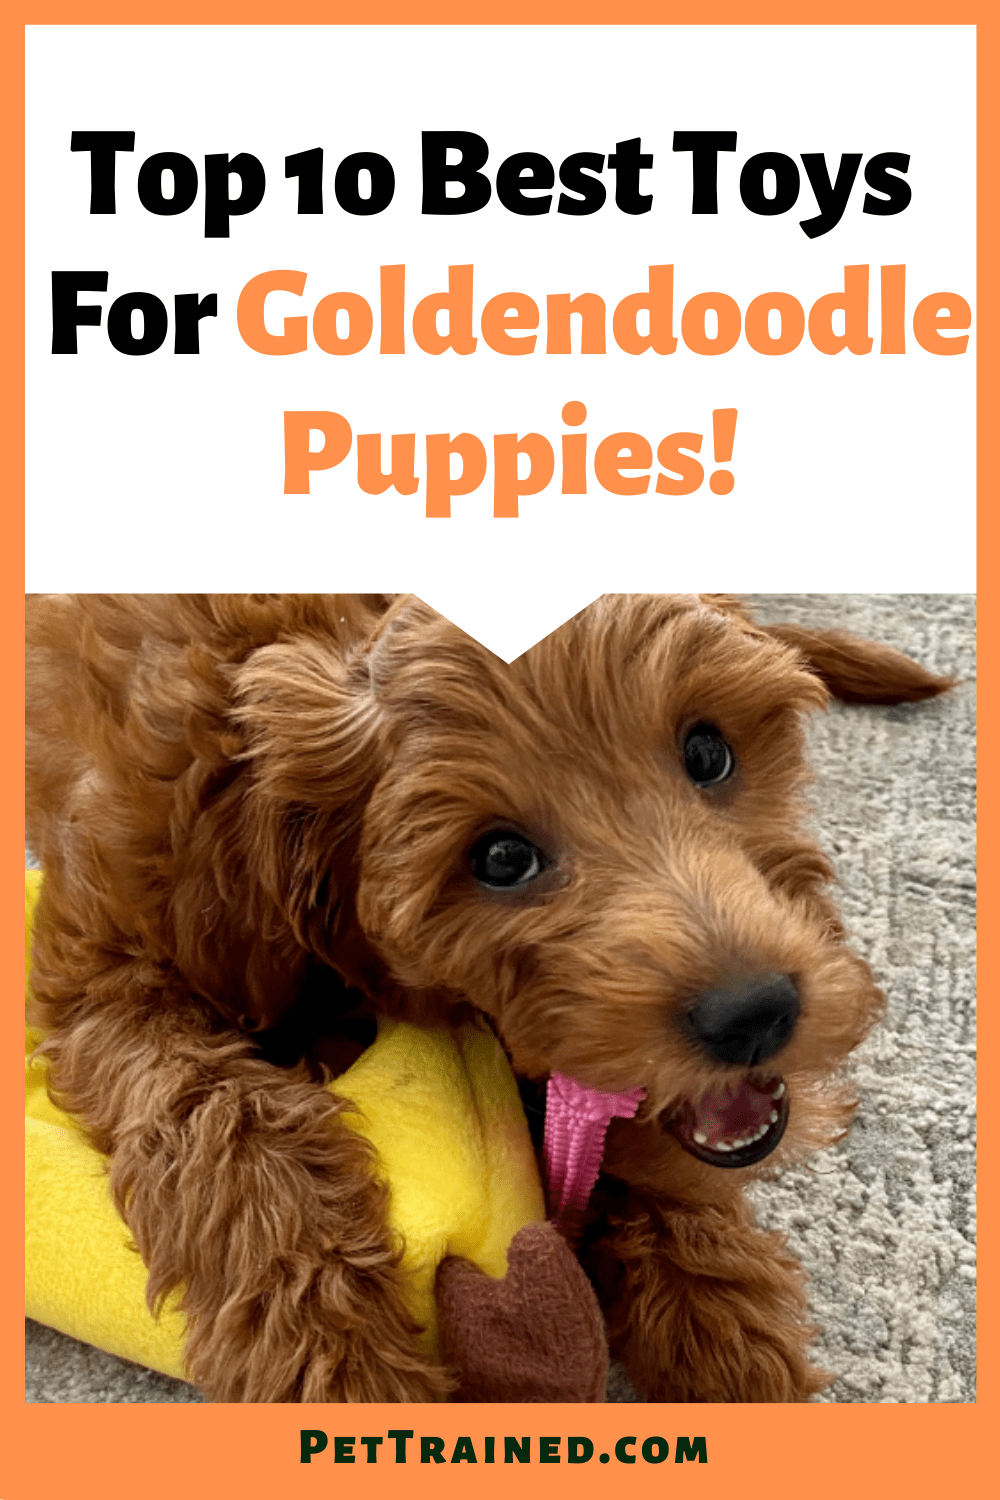 Top 10 Best Toys For Goldendoodle Puppies and dogs